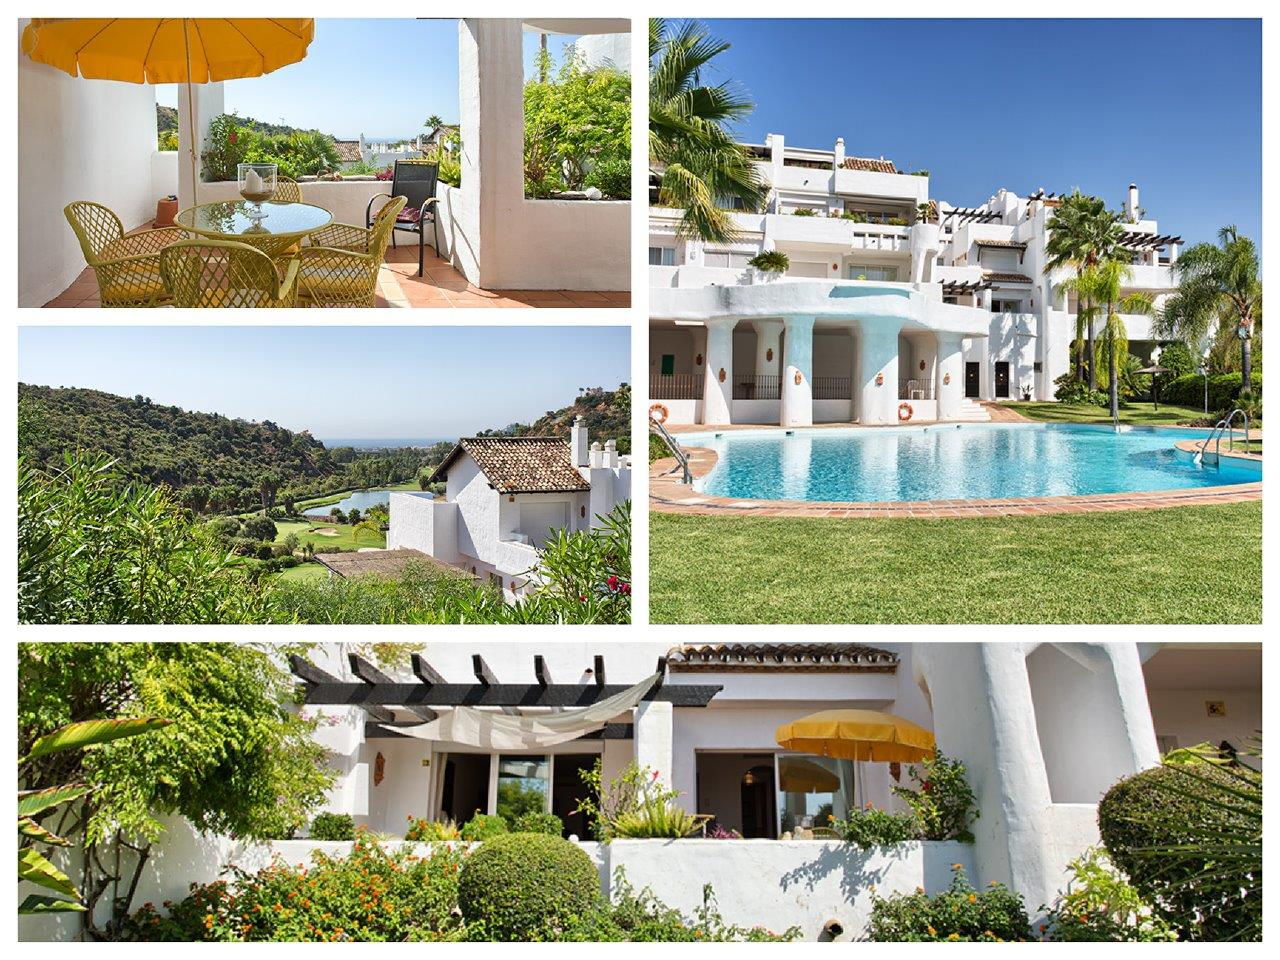 Appartement in La Quinta Golf Benahavis te koop